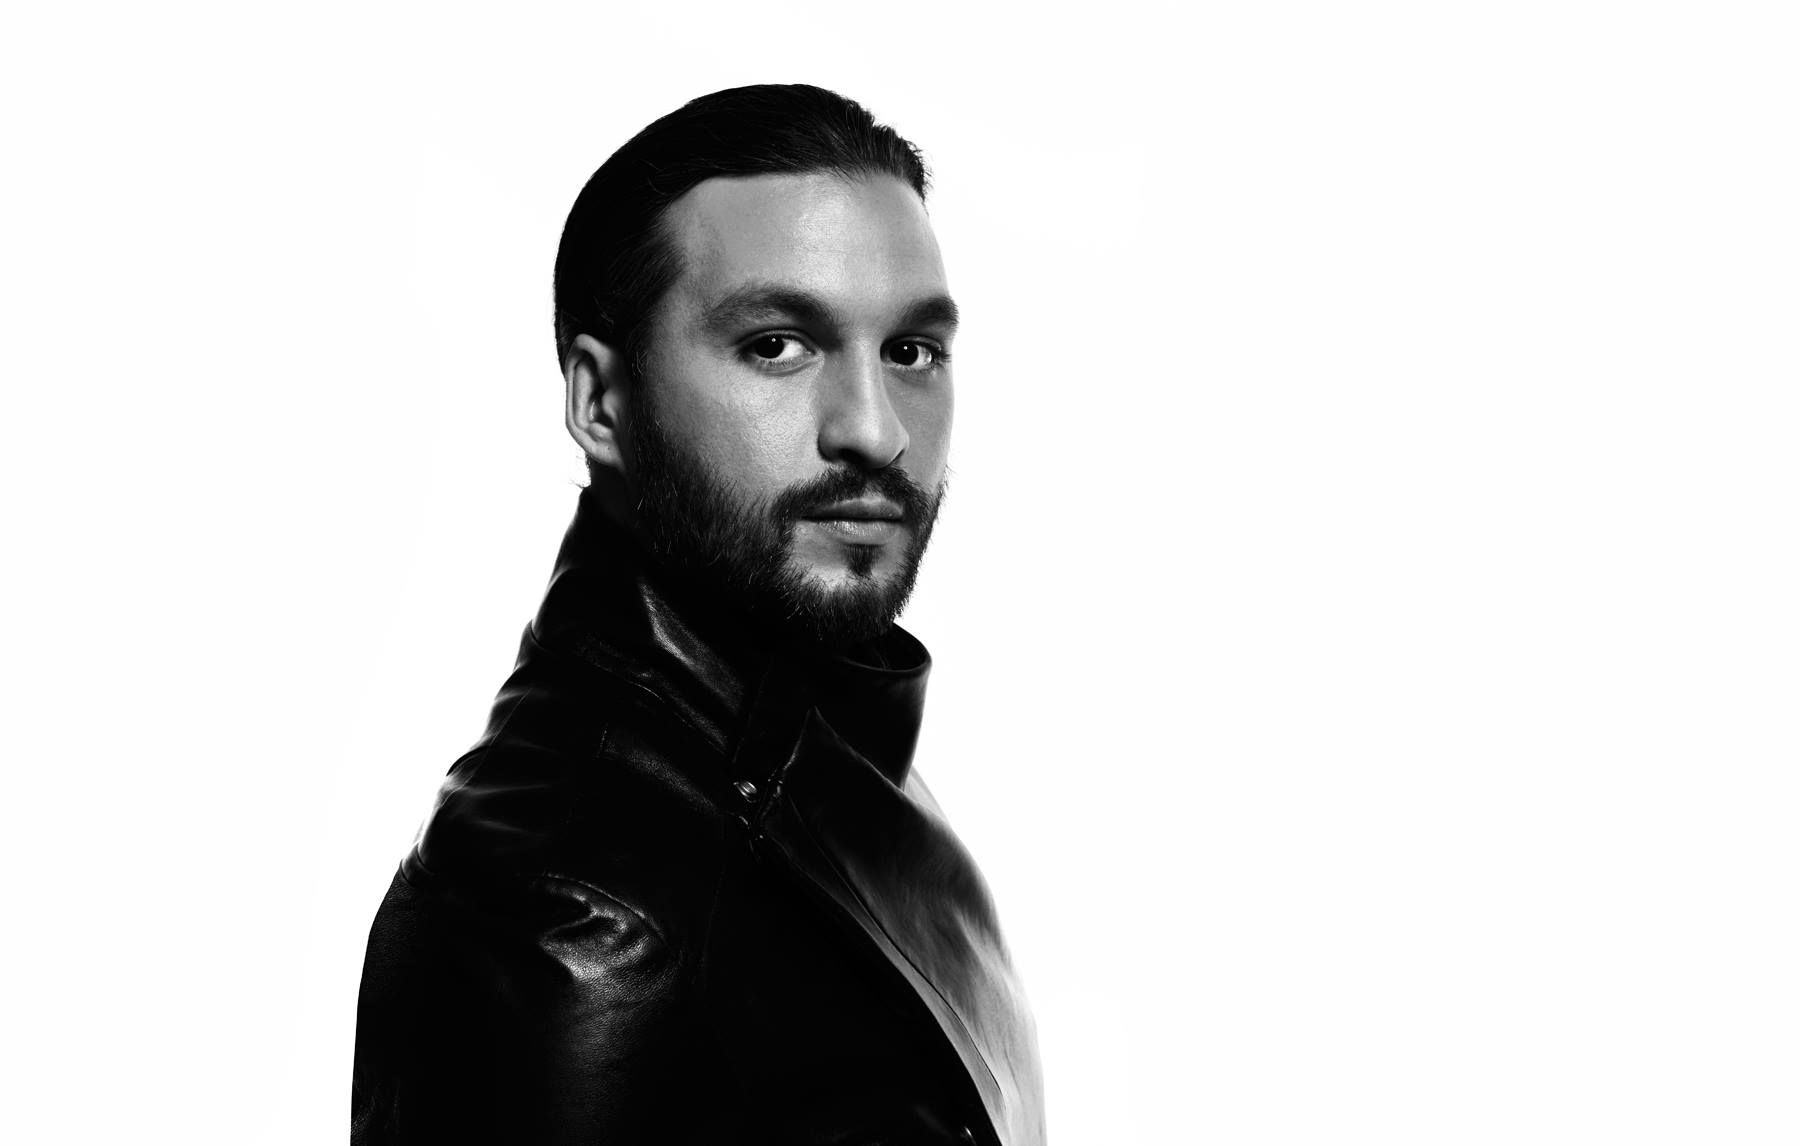 New Music: 'Payback' Steve Angello x Dimitri Vangelis ...